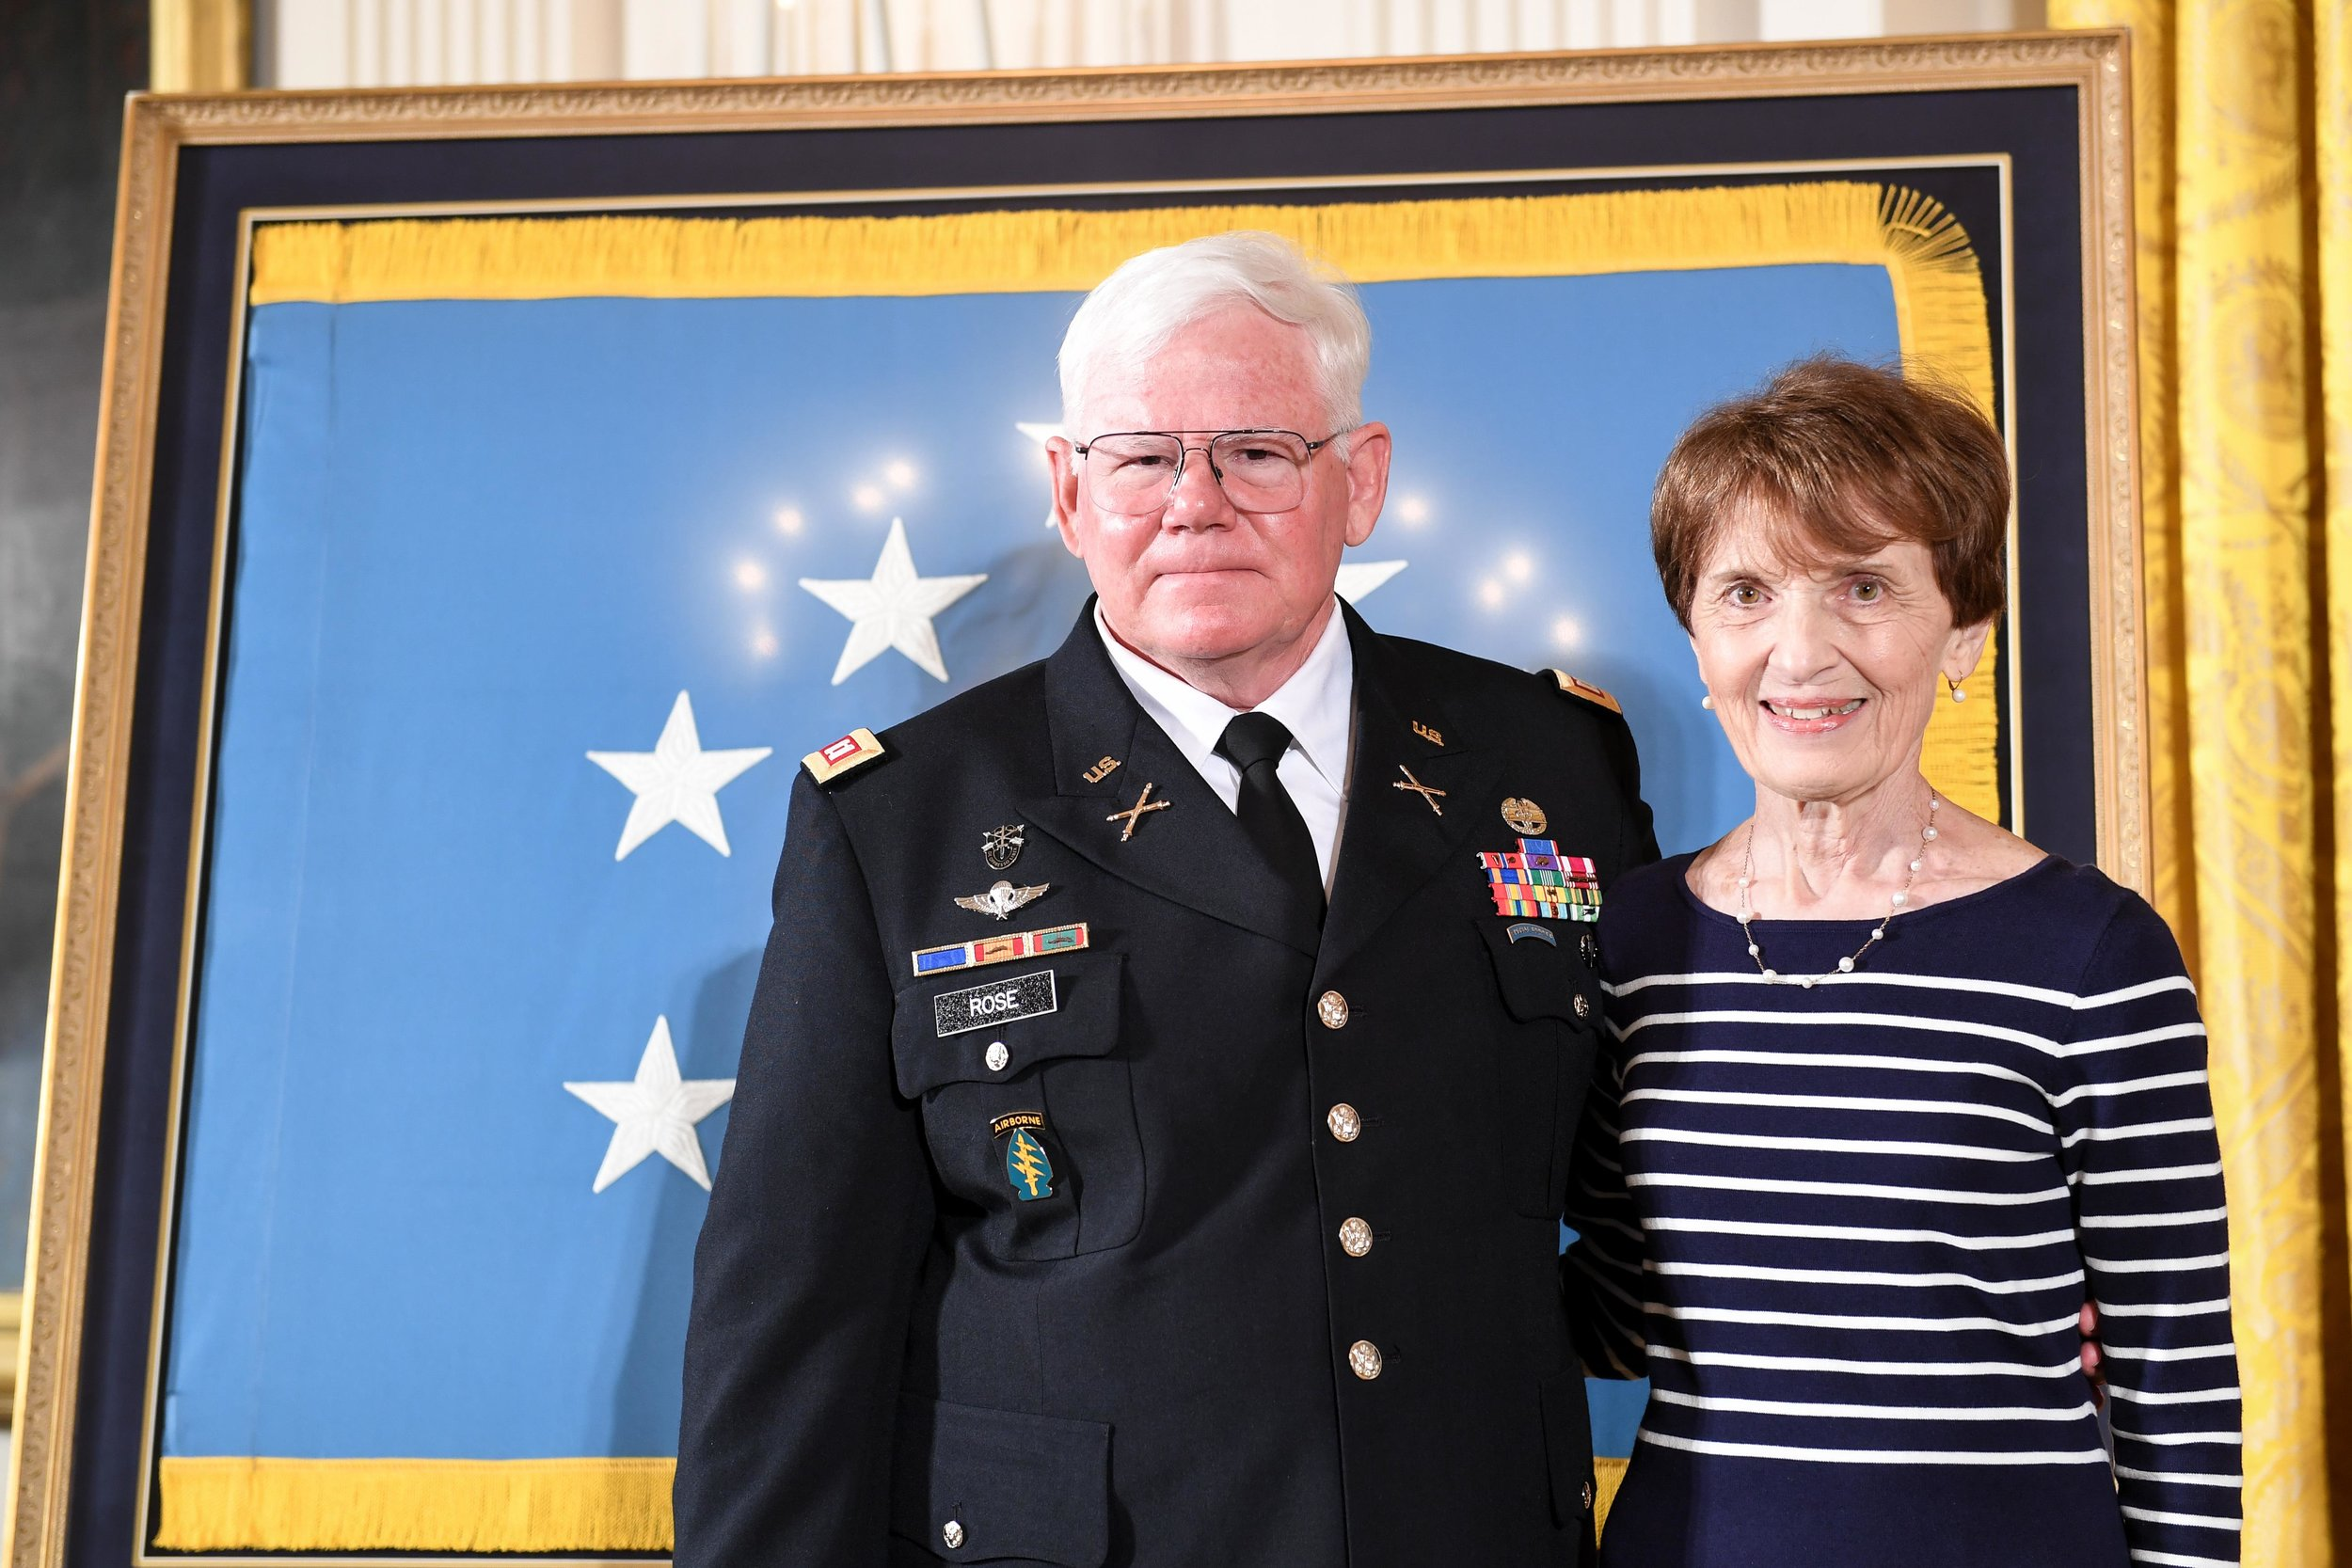 Retired Army Capt. Gary M. Rose and his wife, Margaret, prepare to attend his Medal of Honor ceremony at the White House, Oct. 23, 2017. Army photo by Spc. Tammy Nooner